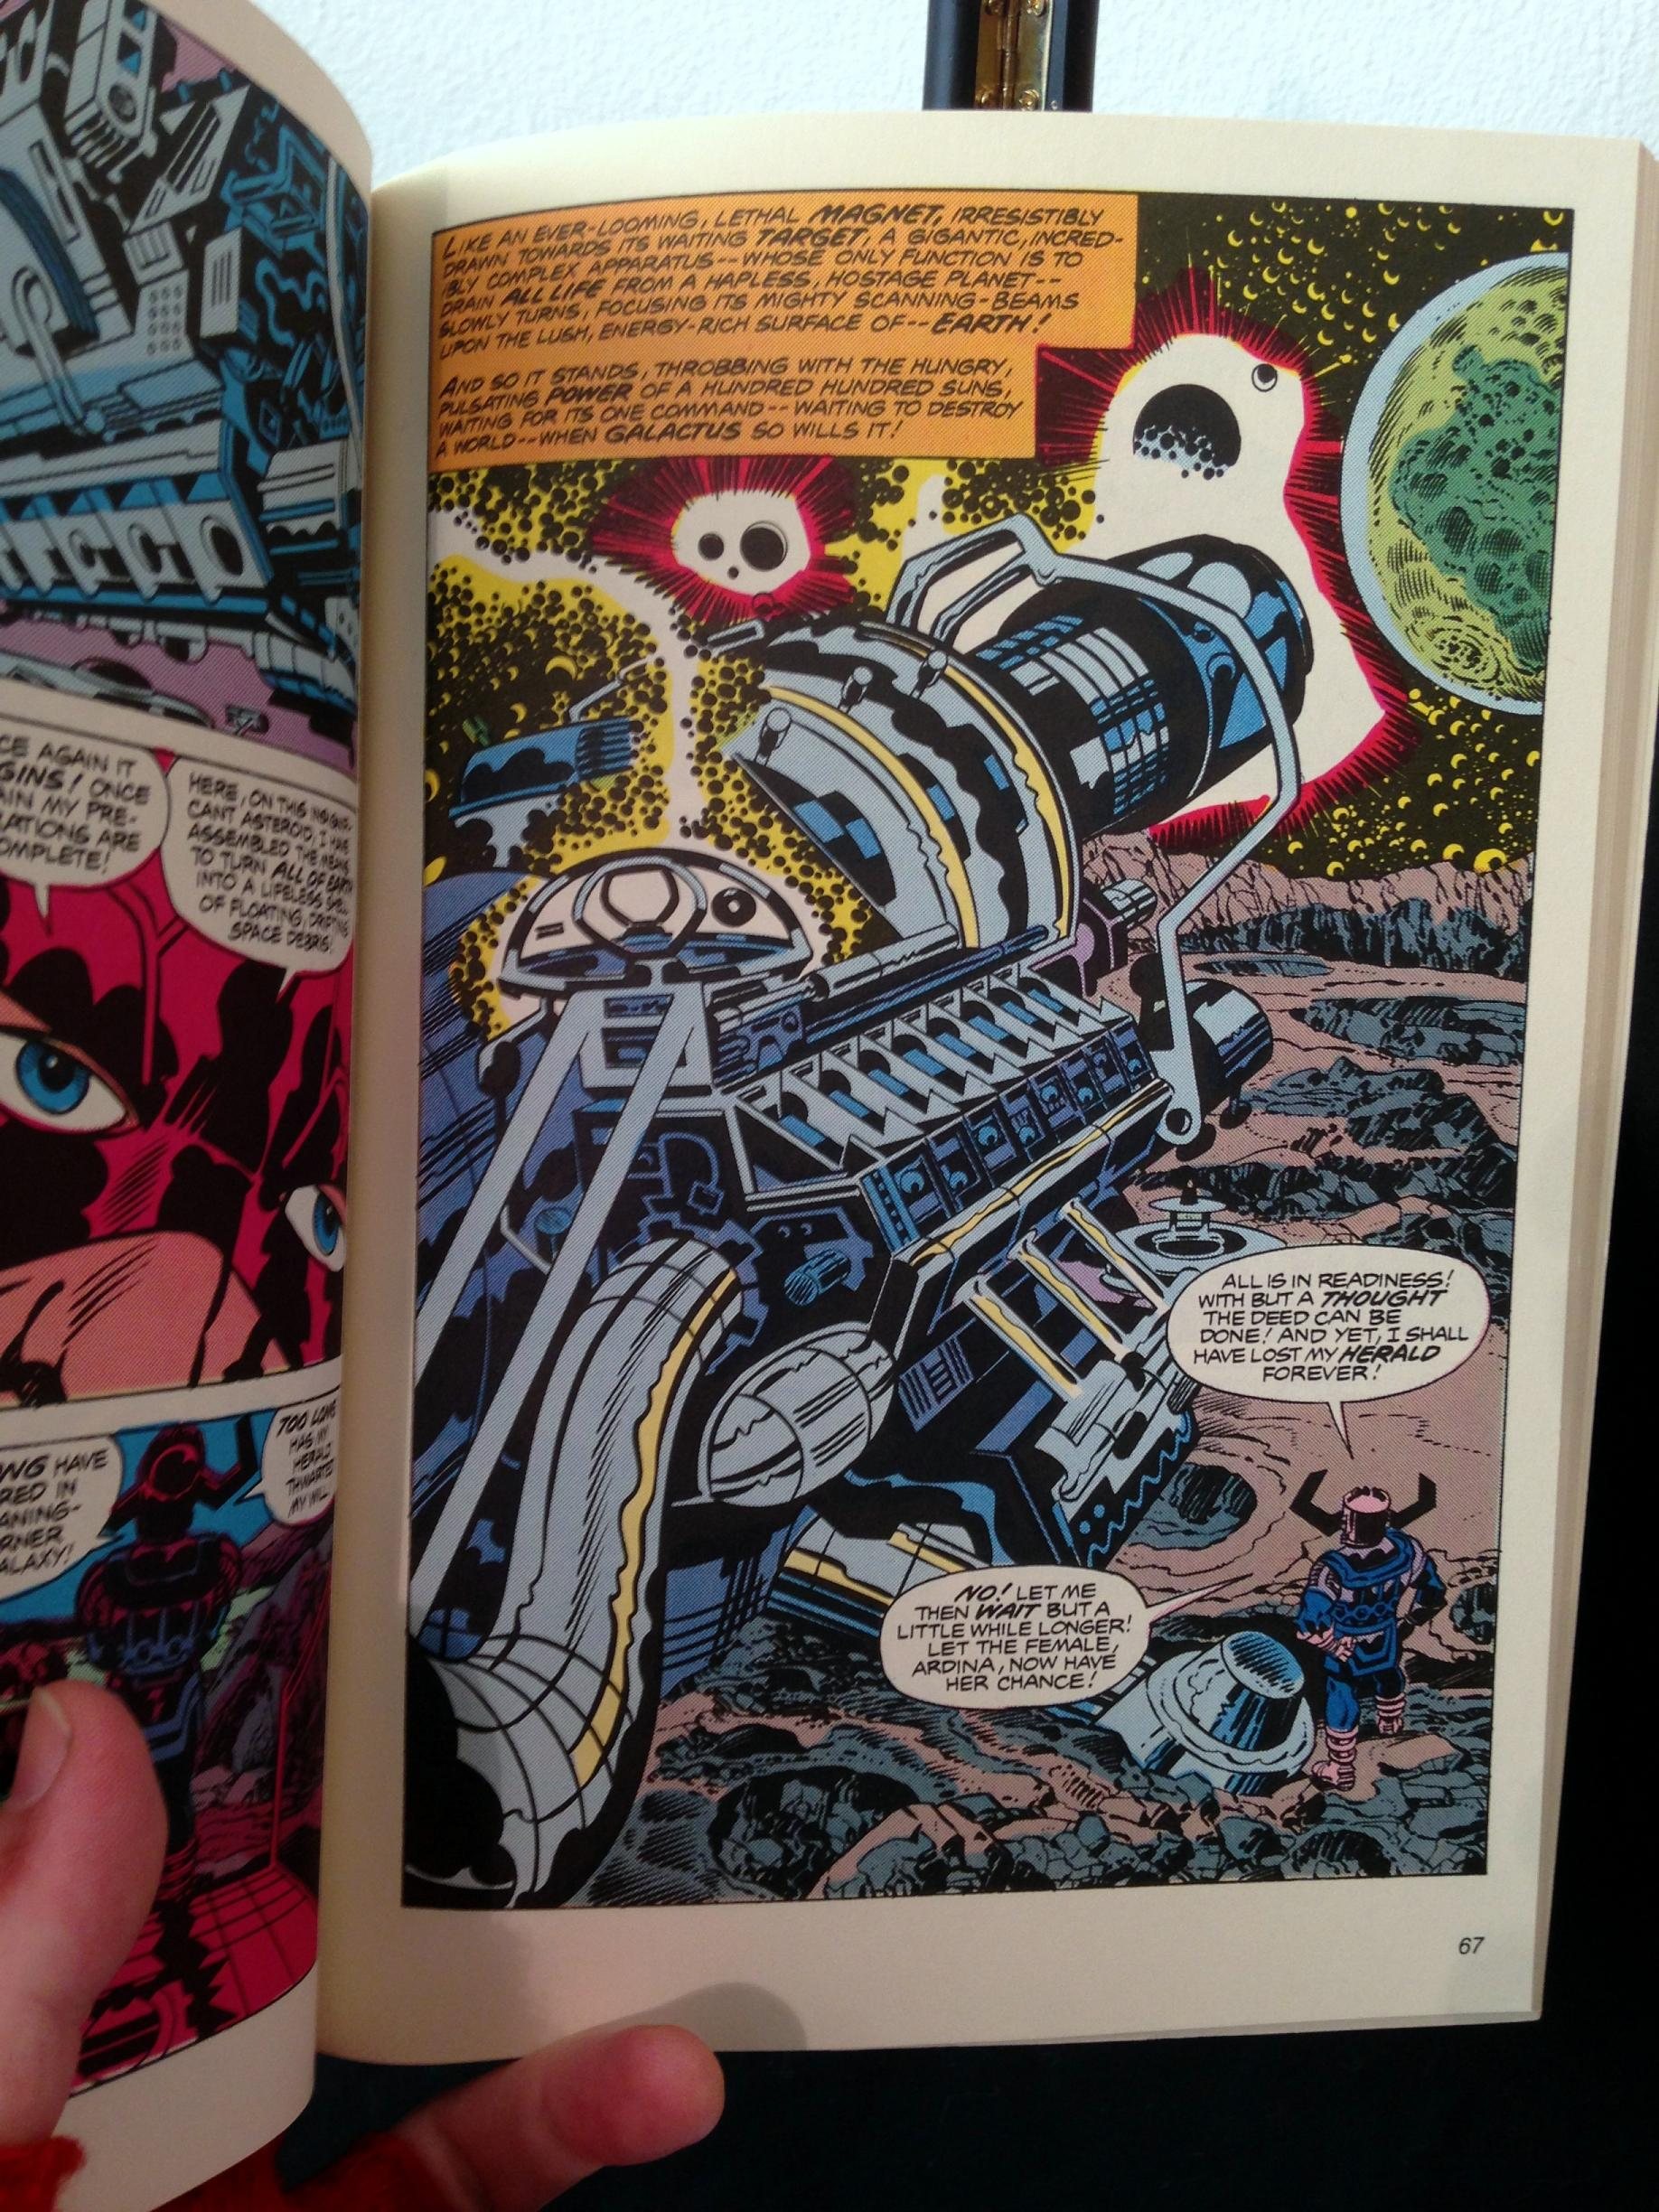 Silver Surfer by Stan Lee and Jack Kirby (13)